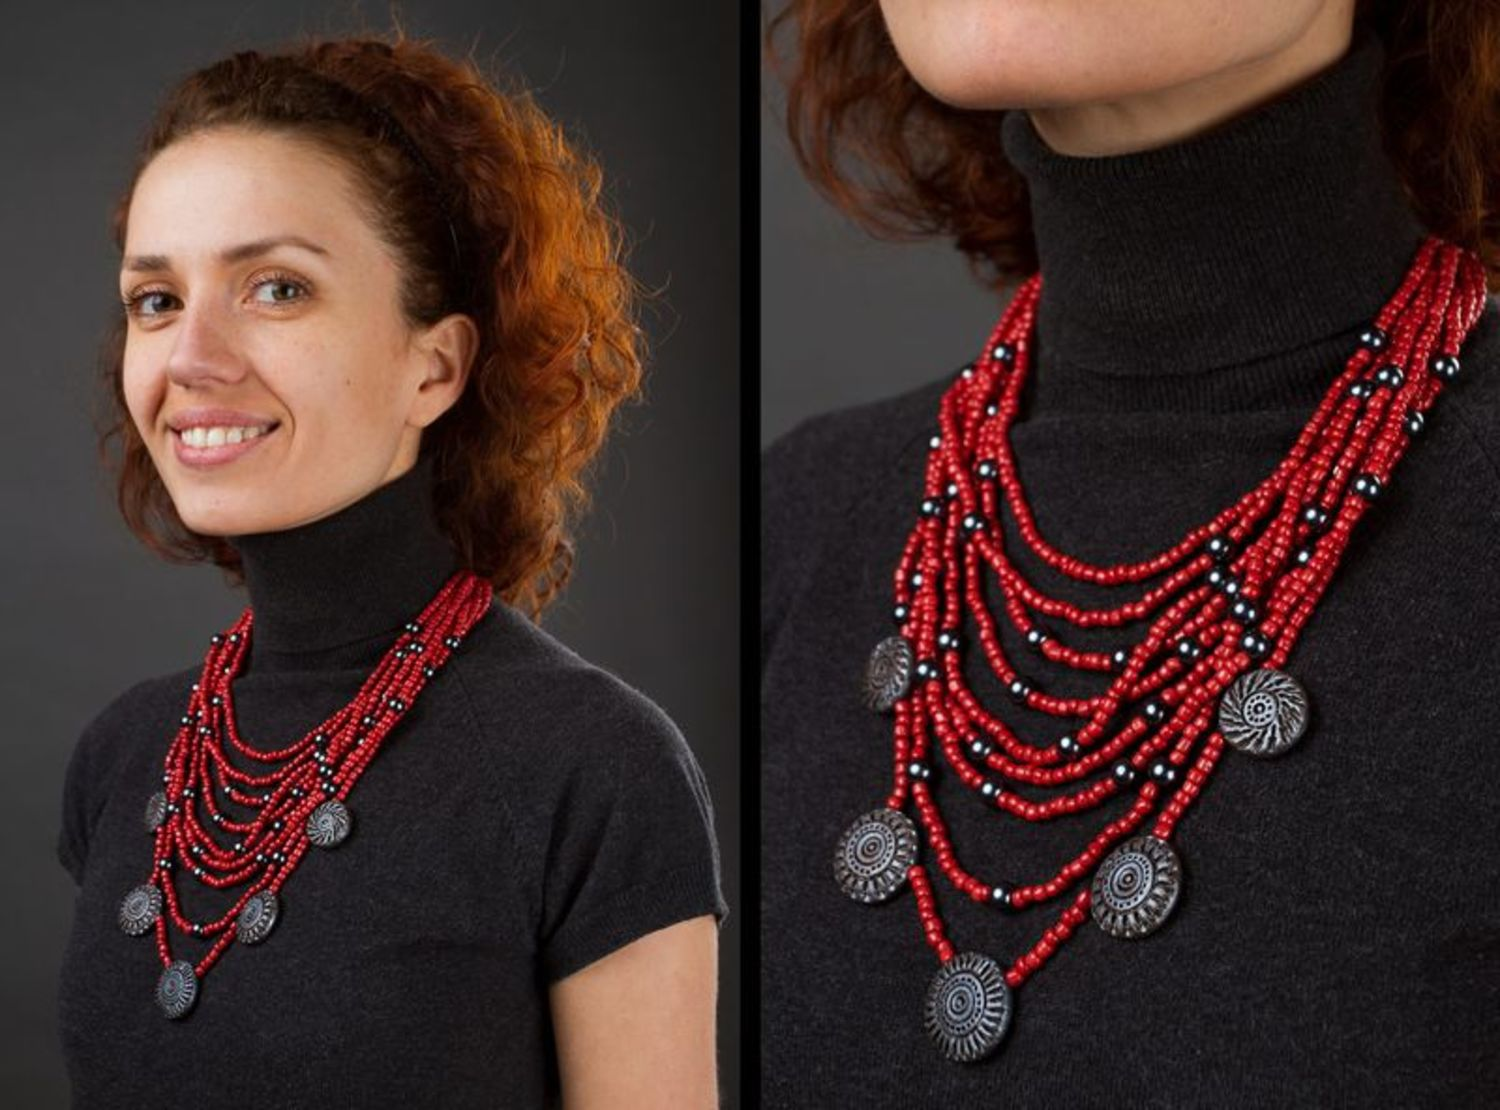 Necklace made of beads photo 5